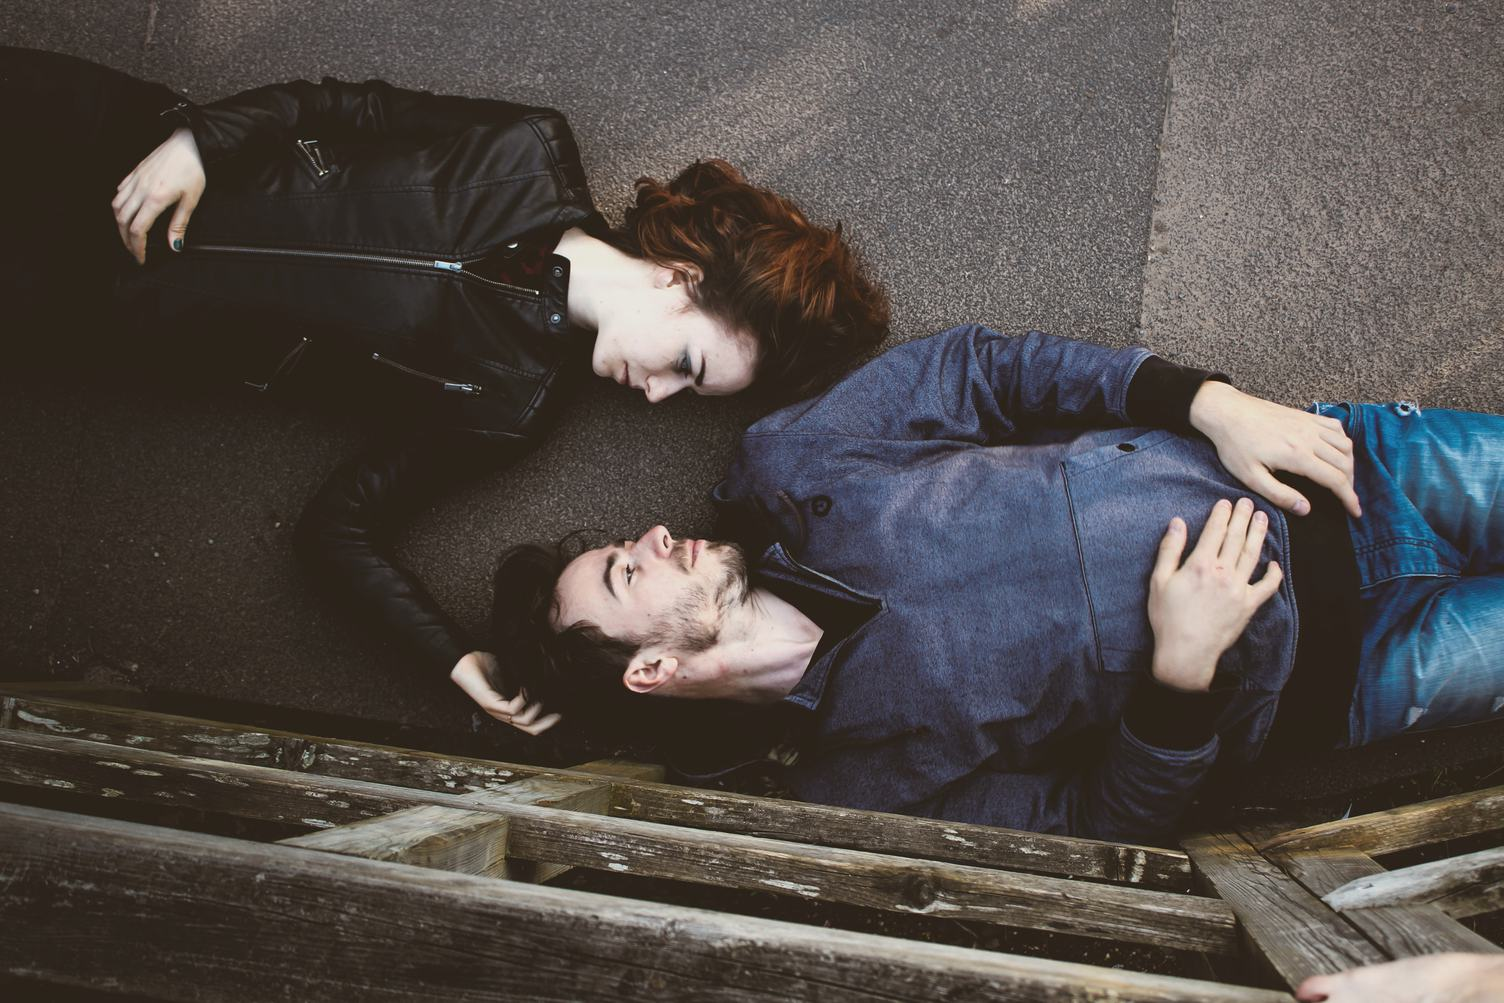 Man and Woman Together Lying on a Floor